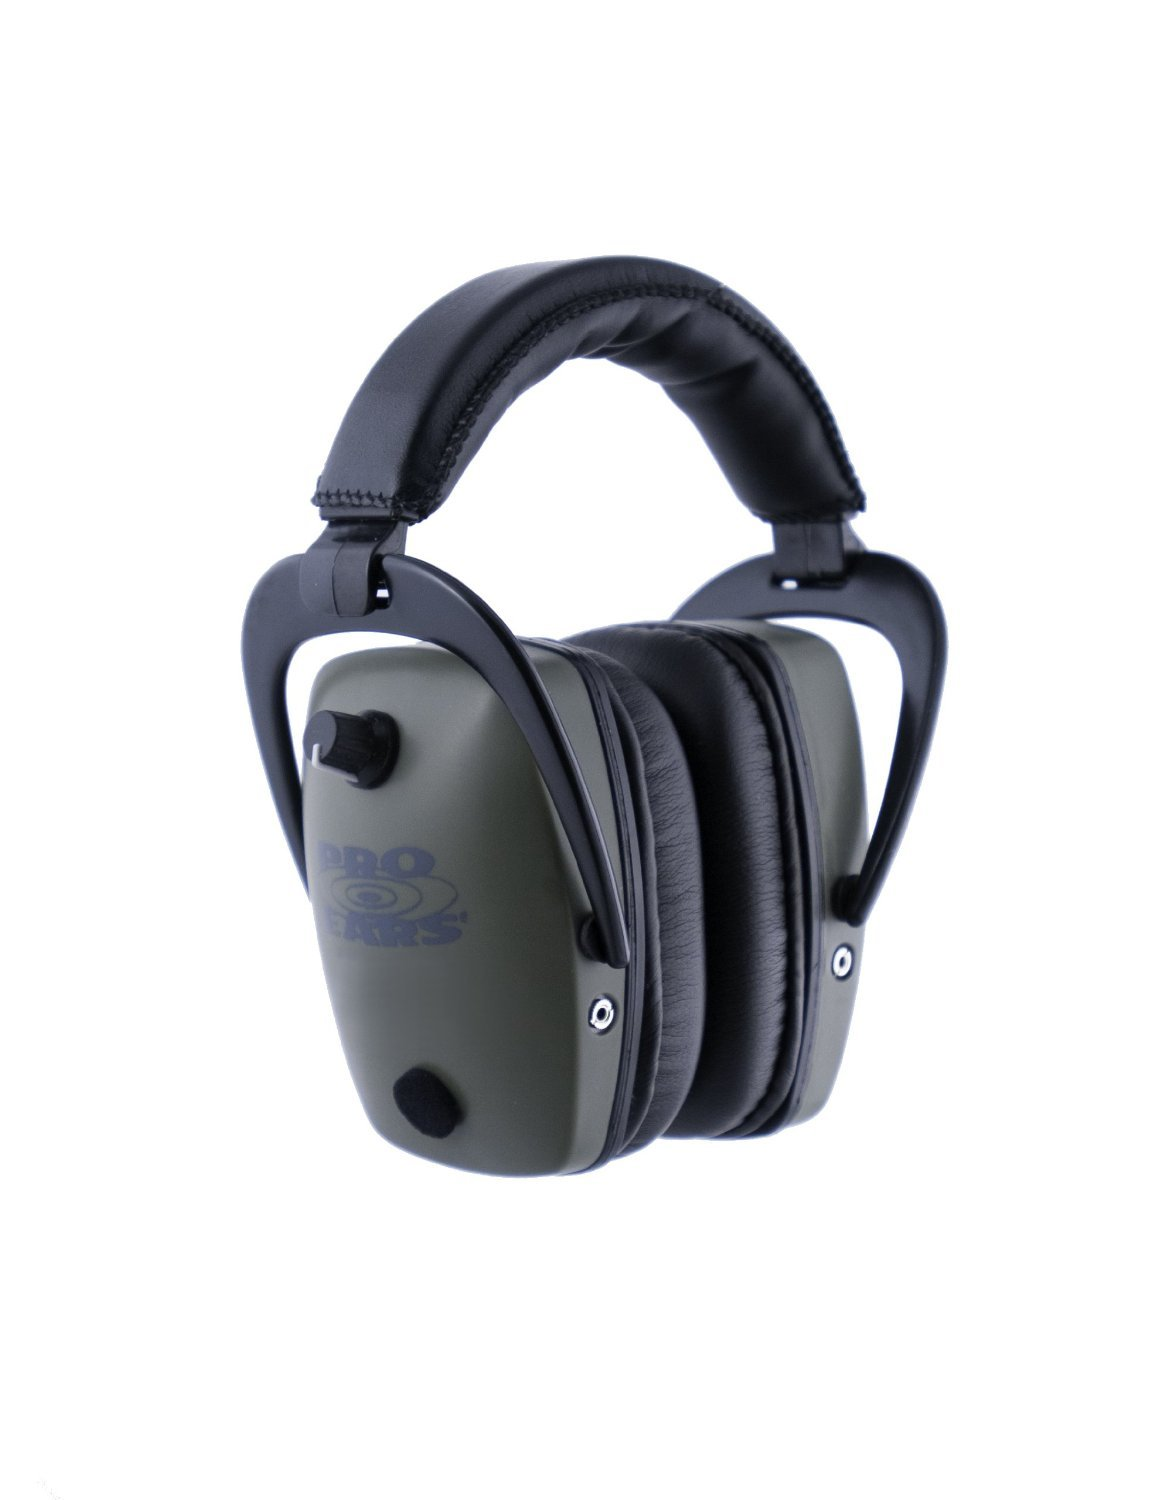 Pro Ears - Pro Tac Slim Gold - Military Grade Hearing Protection and Amplification - NRR 28 - Ear Muffs -  Lithium 123a Batteries - Green